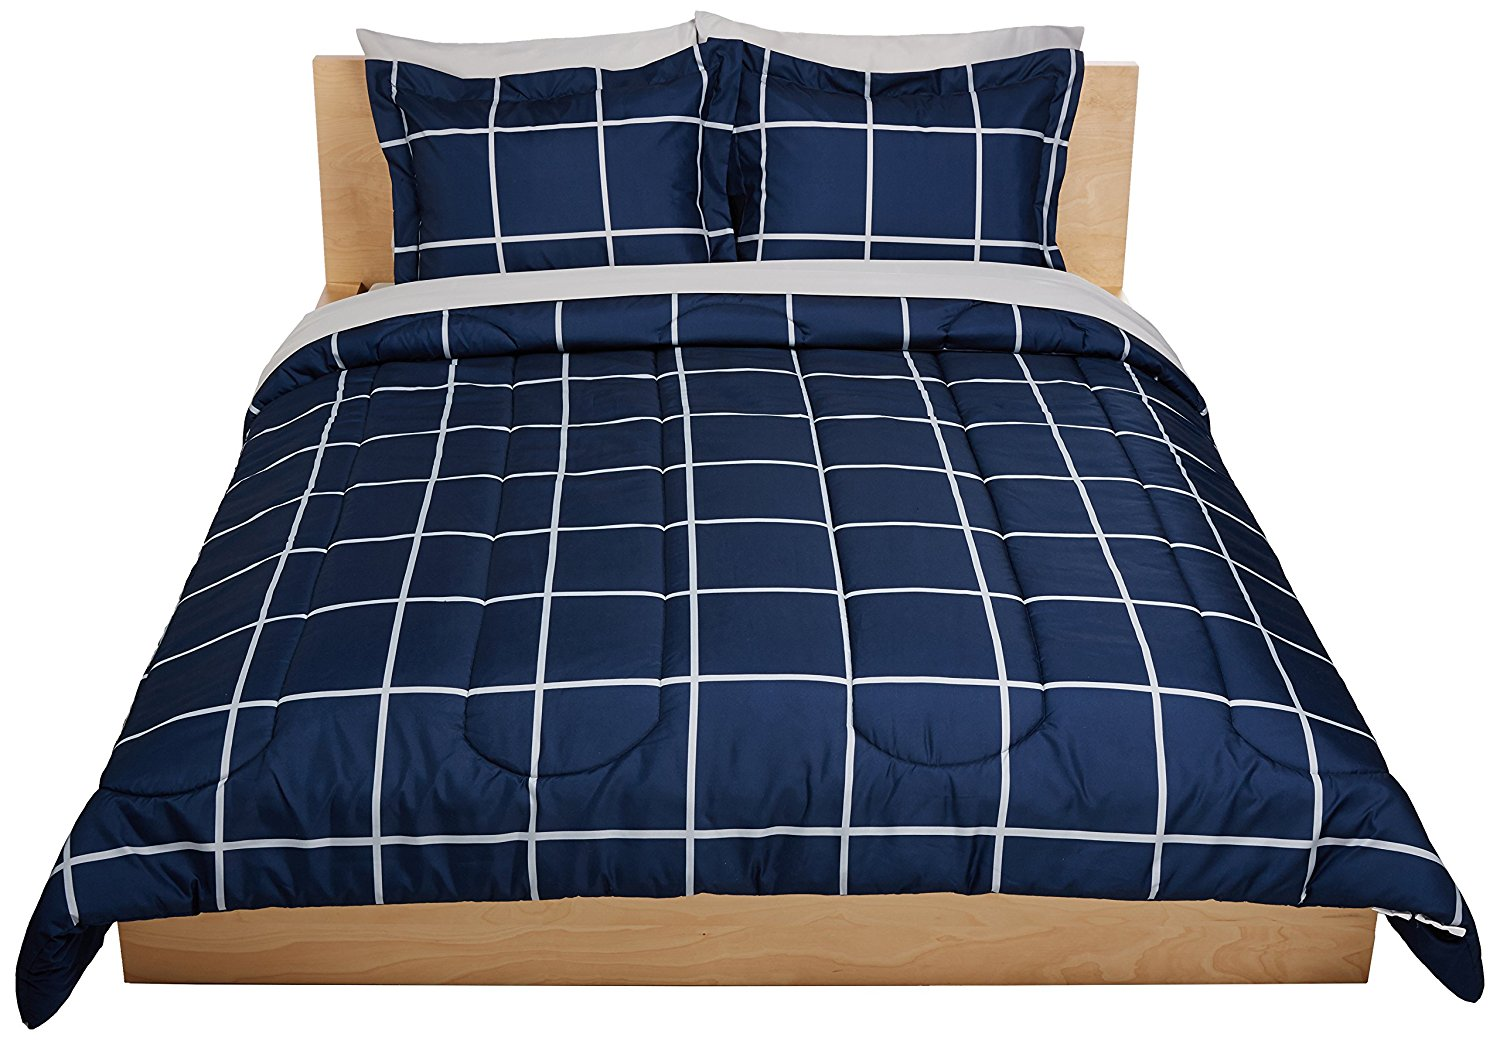 Ruvanti Basic Navy Blue Bed in a Bag